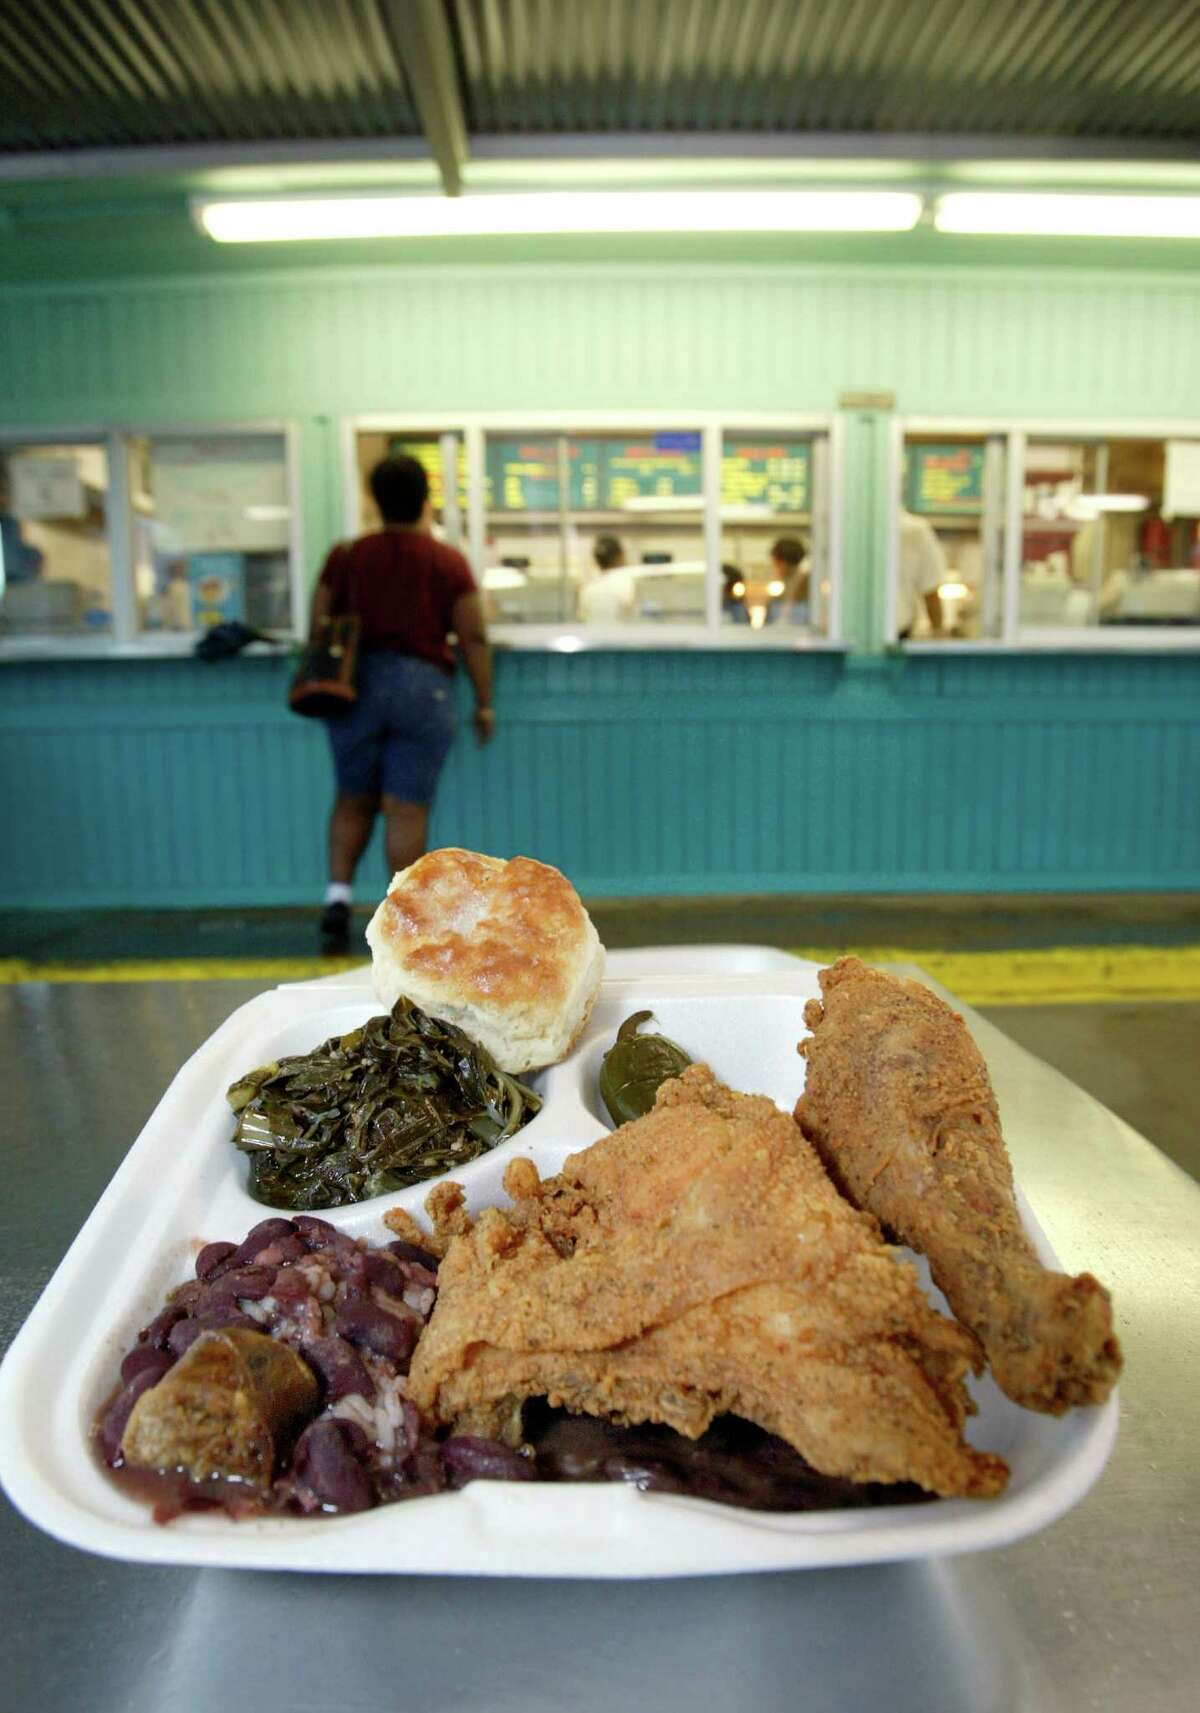 Frenchy's Chicken will satisfy a craving for fried chicken, as well as greens and red beans and rice. Finish off the meal with a Southern-style biscuit.